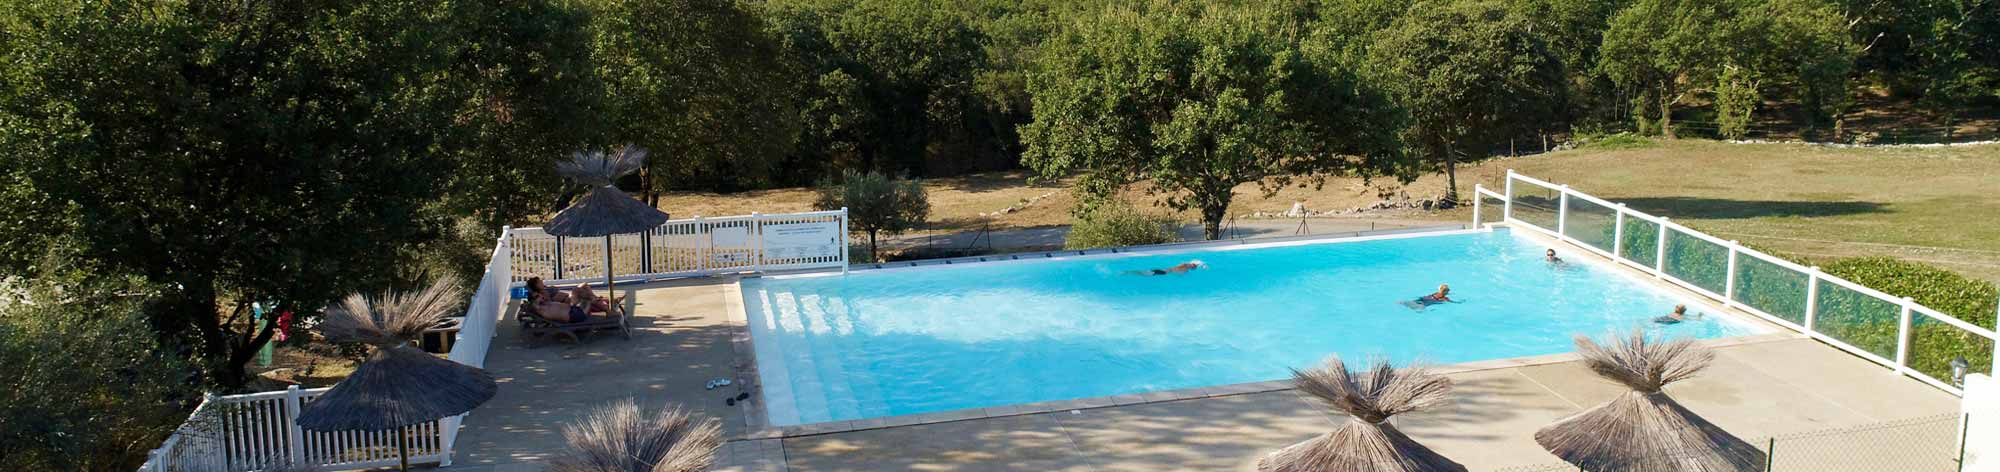 piscine camping gorges ardeche ruoms